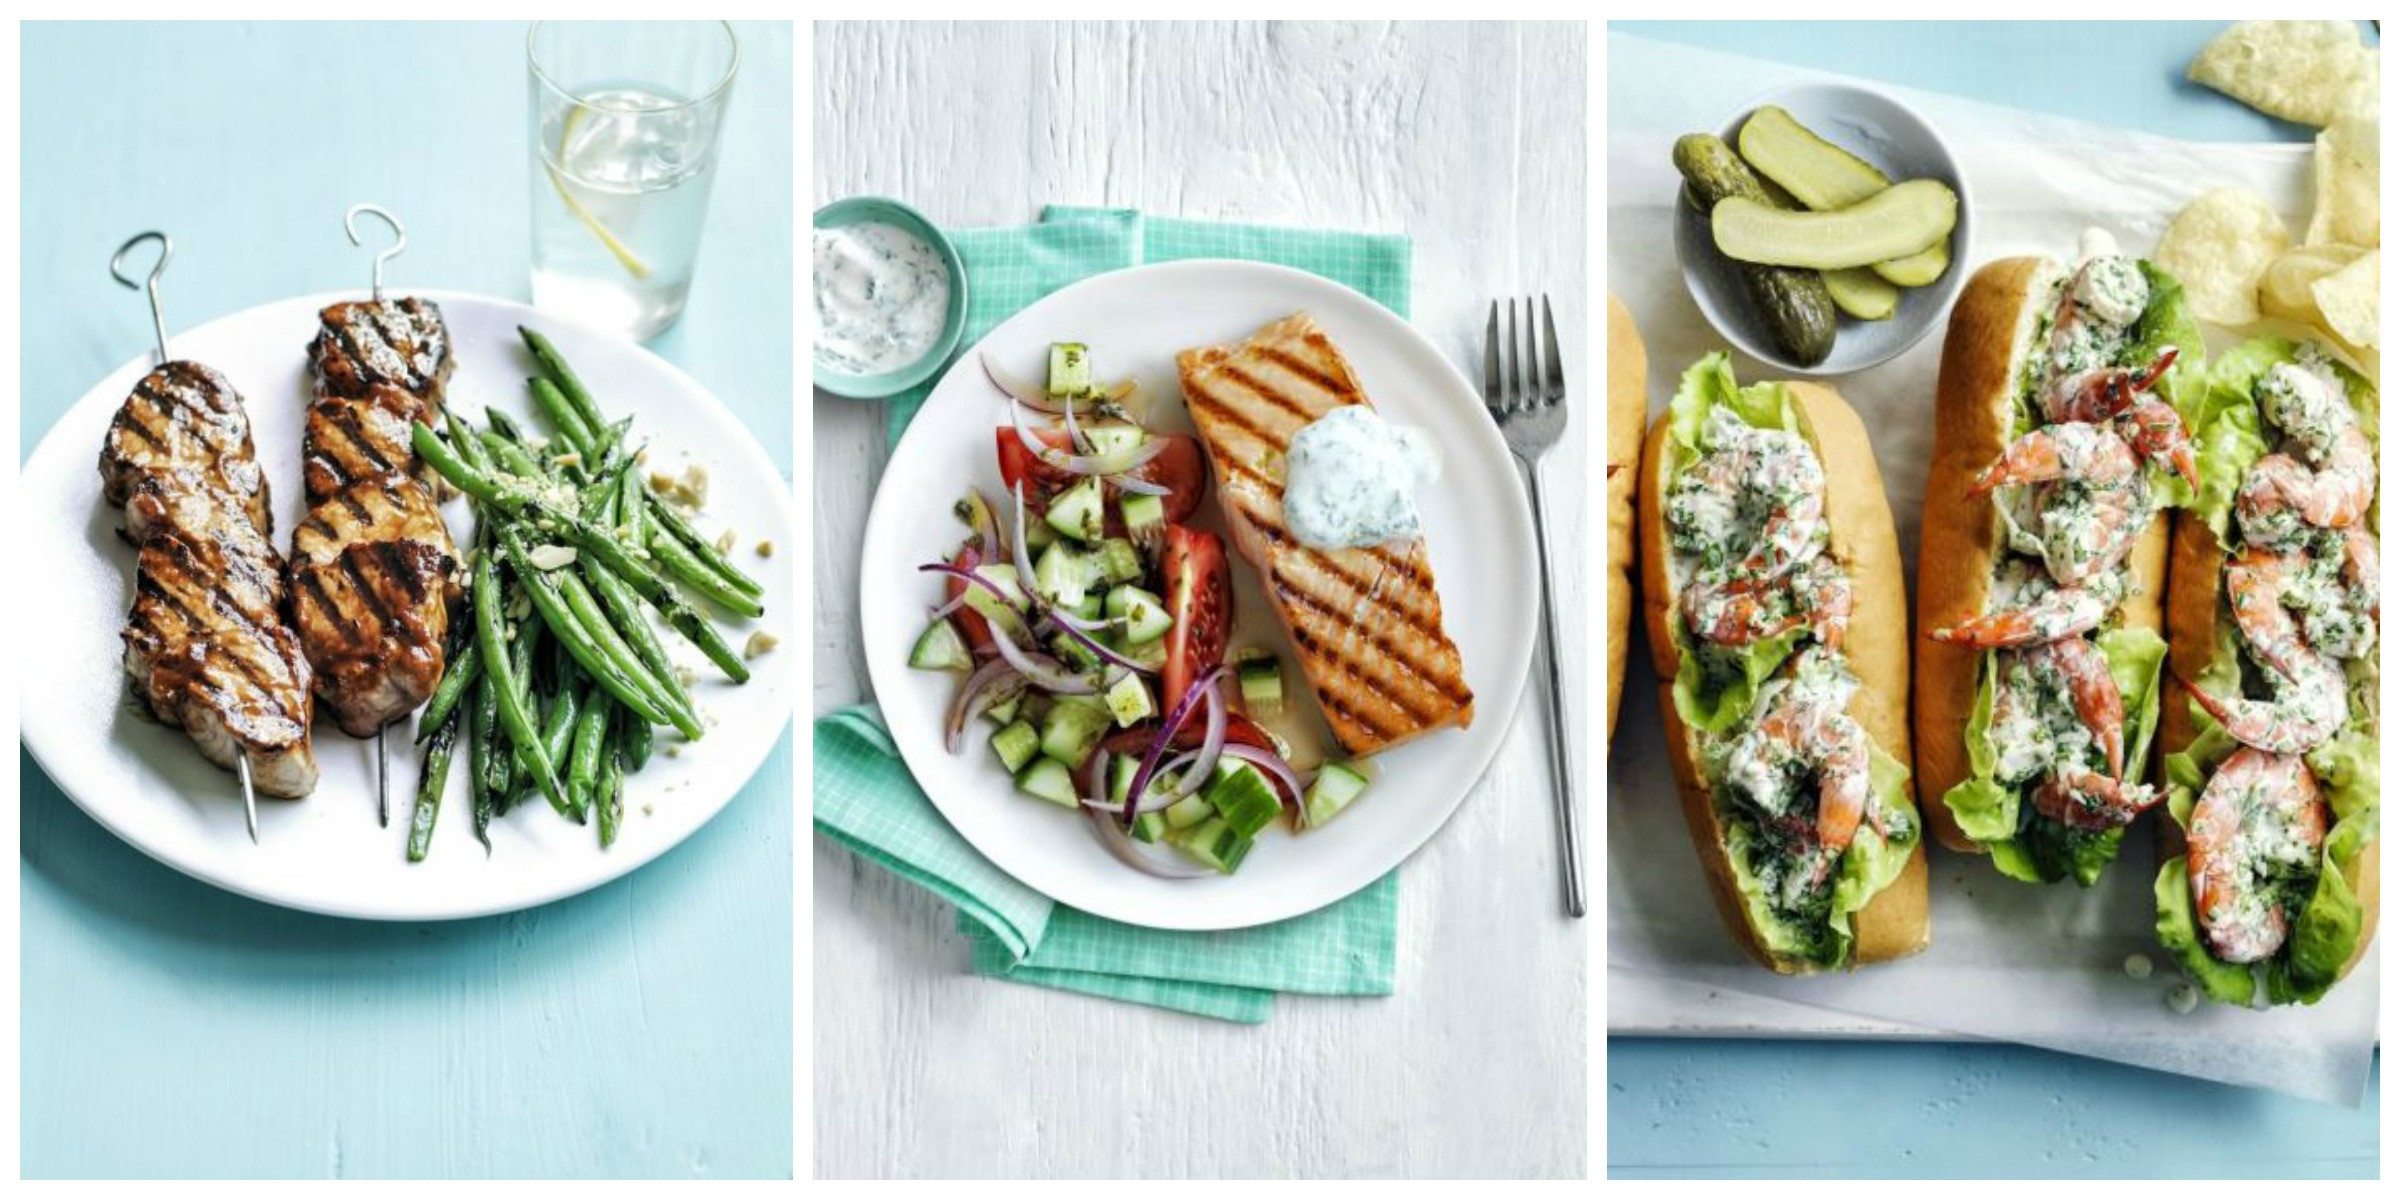 Light Healthy Dinners  20 Healthy Dinner Ideas Recipes for Light Meals